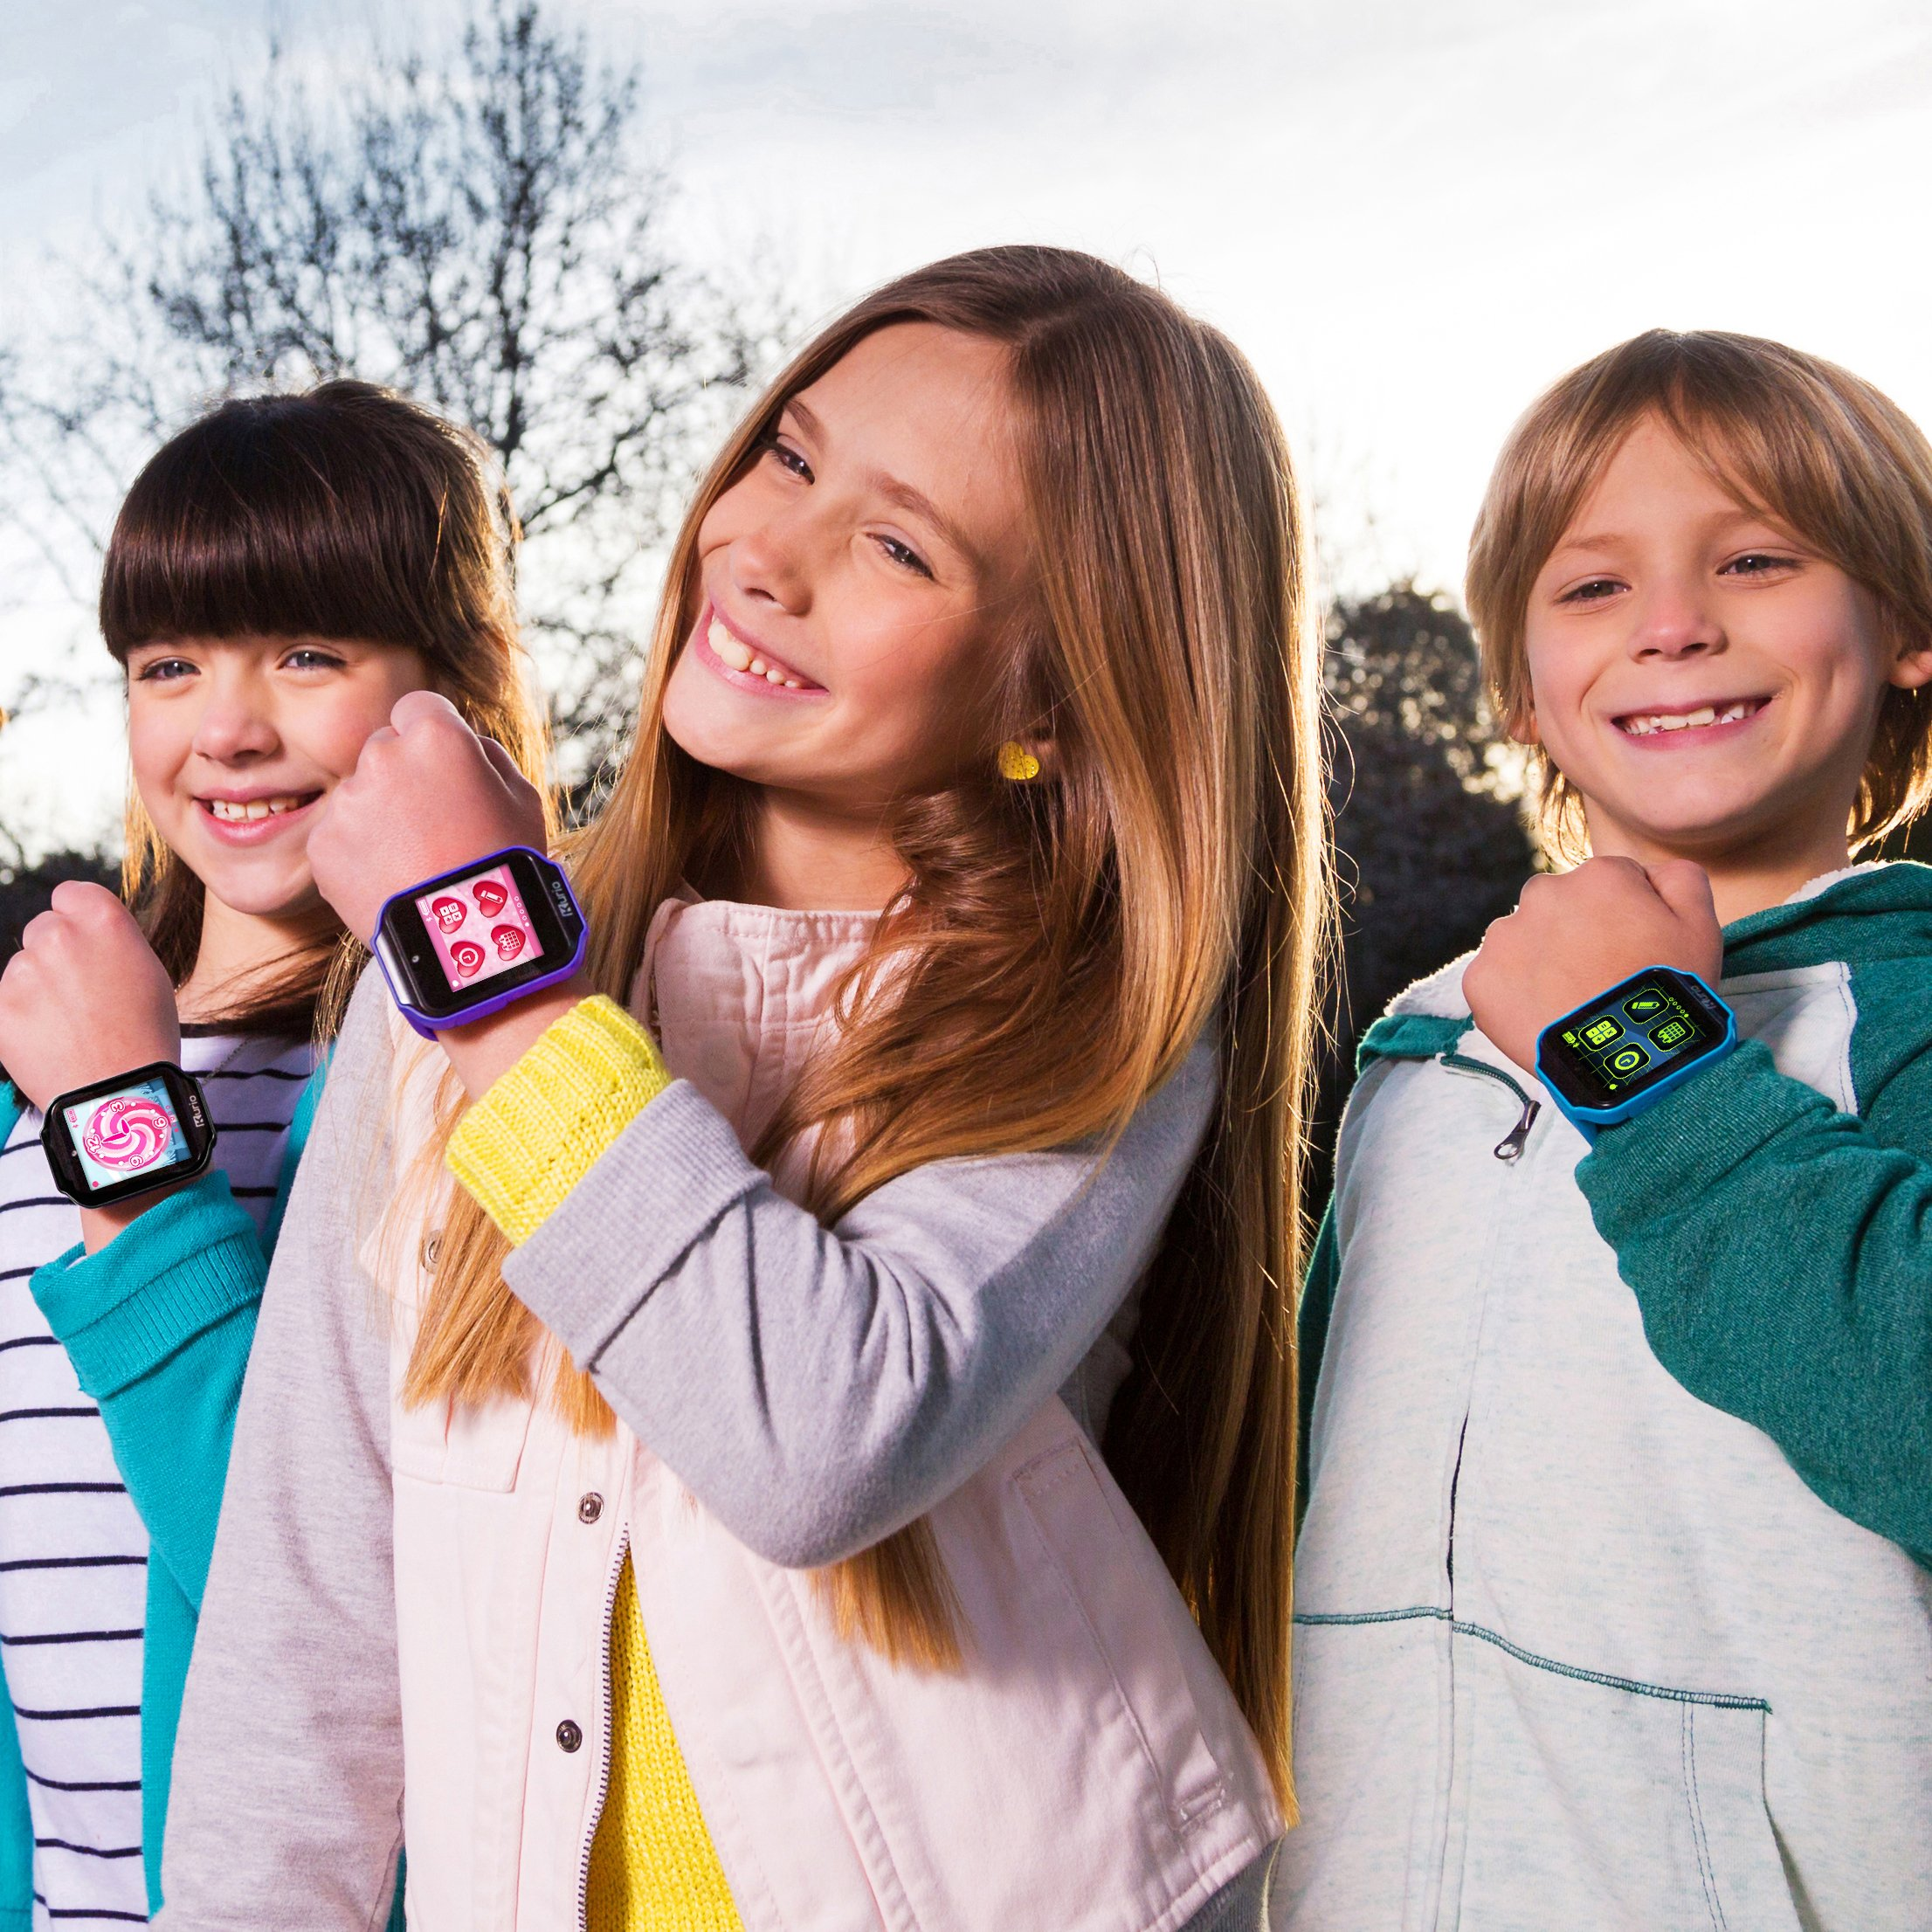 Kurio Watch 2.0+ The Ultimate Smartwatch Built for Kids with 2 Bands, Blue and Color Change by KD Interactive (Image #2)